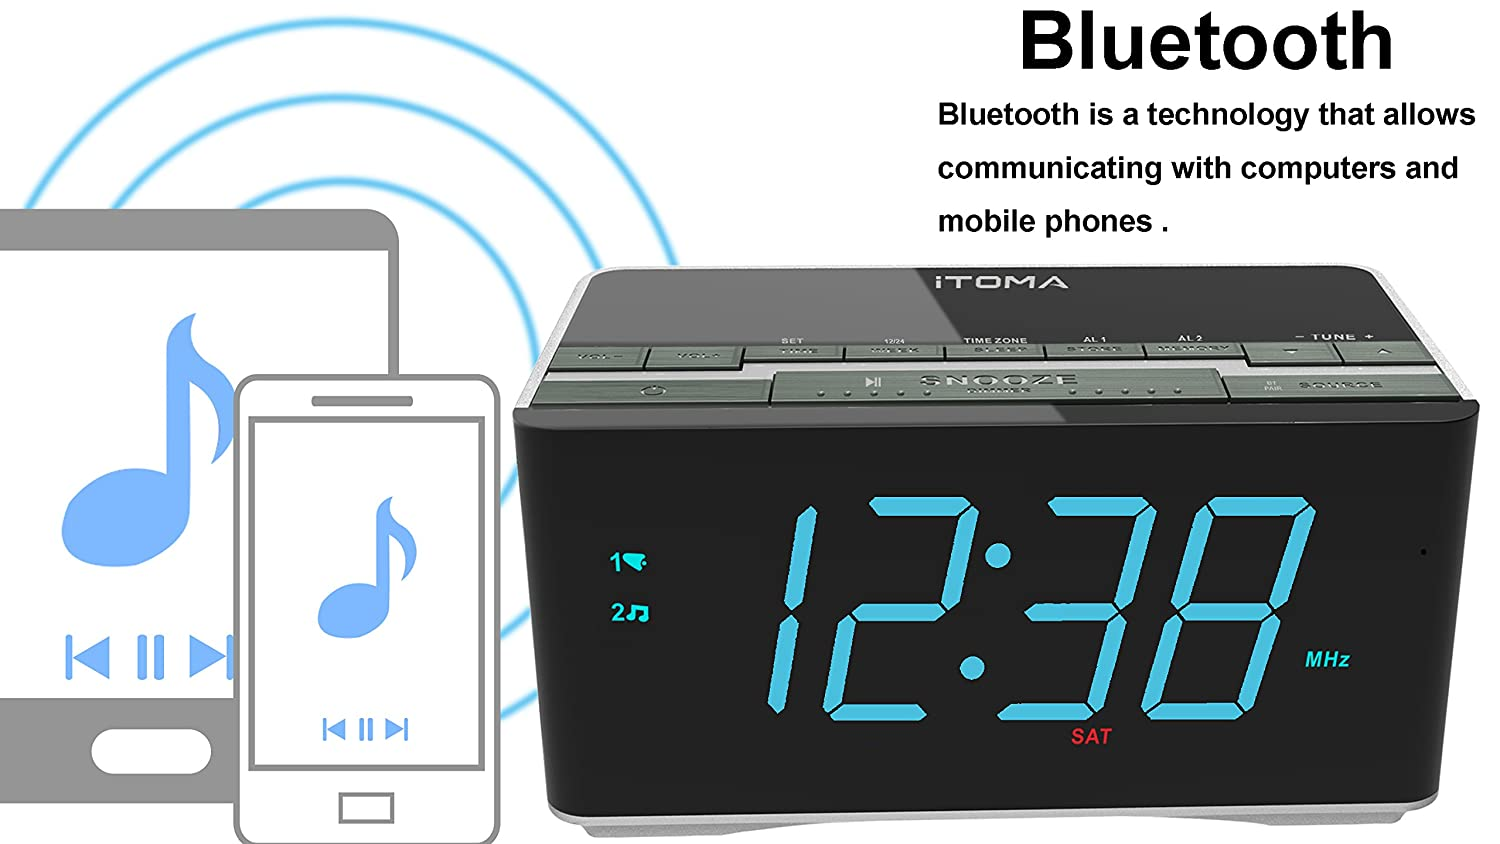 Itoma Alarm Clock Radio With Wireless Bluetooth Stereo Breaker Panel Wiring Likewise Military Time On Can Light Speakersdigital Fm Radiodual Snoozeauto Dimmercell Phone Usb Charging